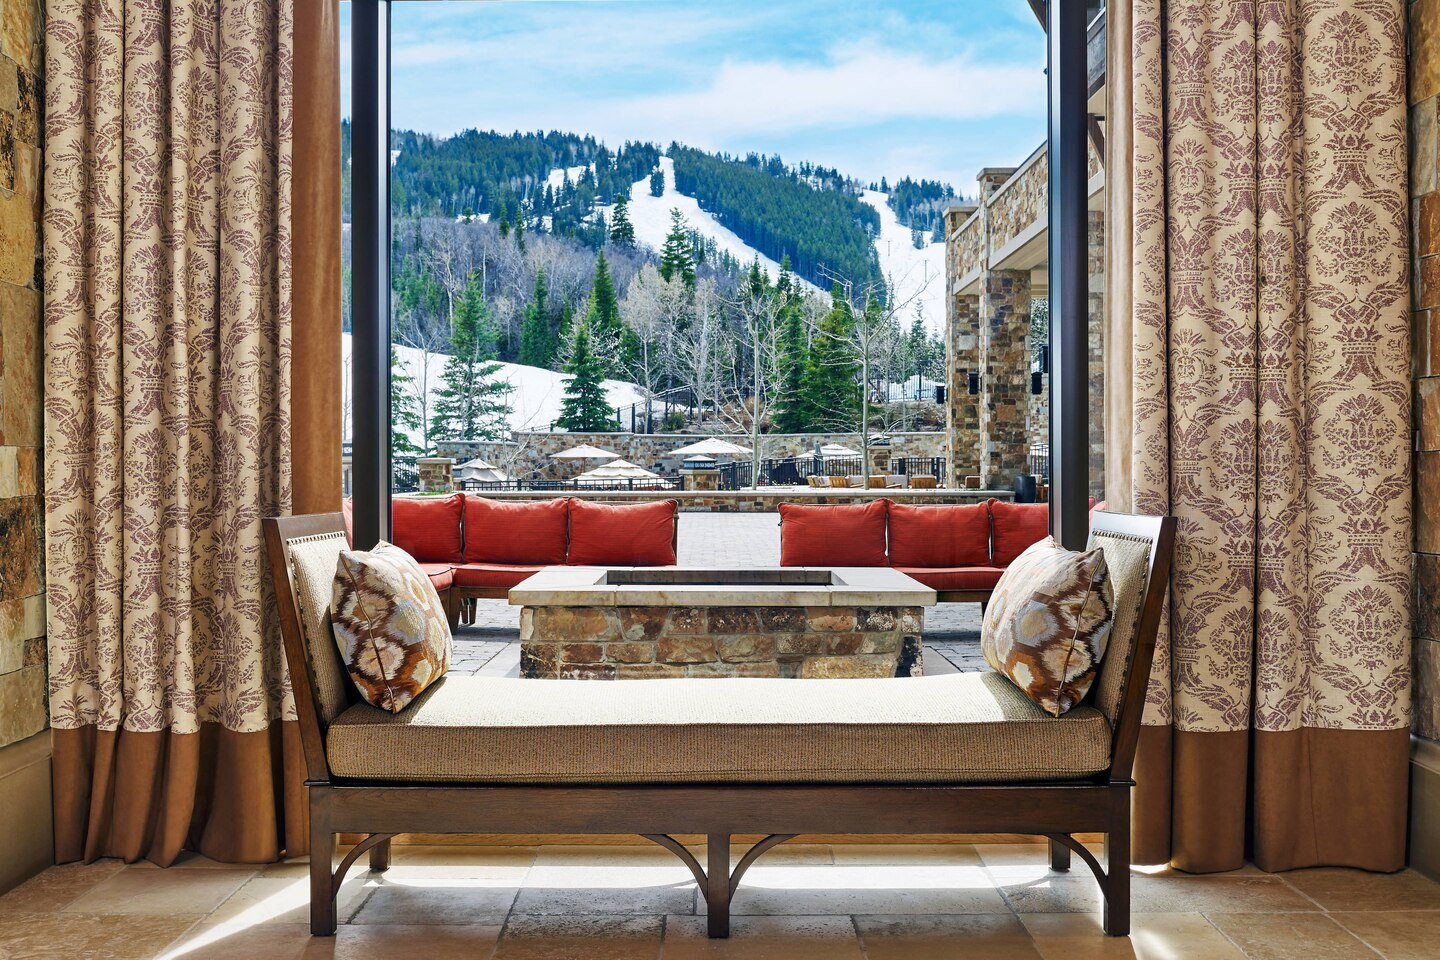 Lobby of the St. Regis Deer Valley, Park City, Utah